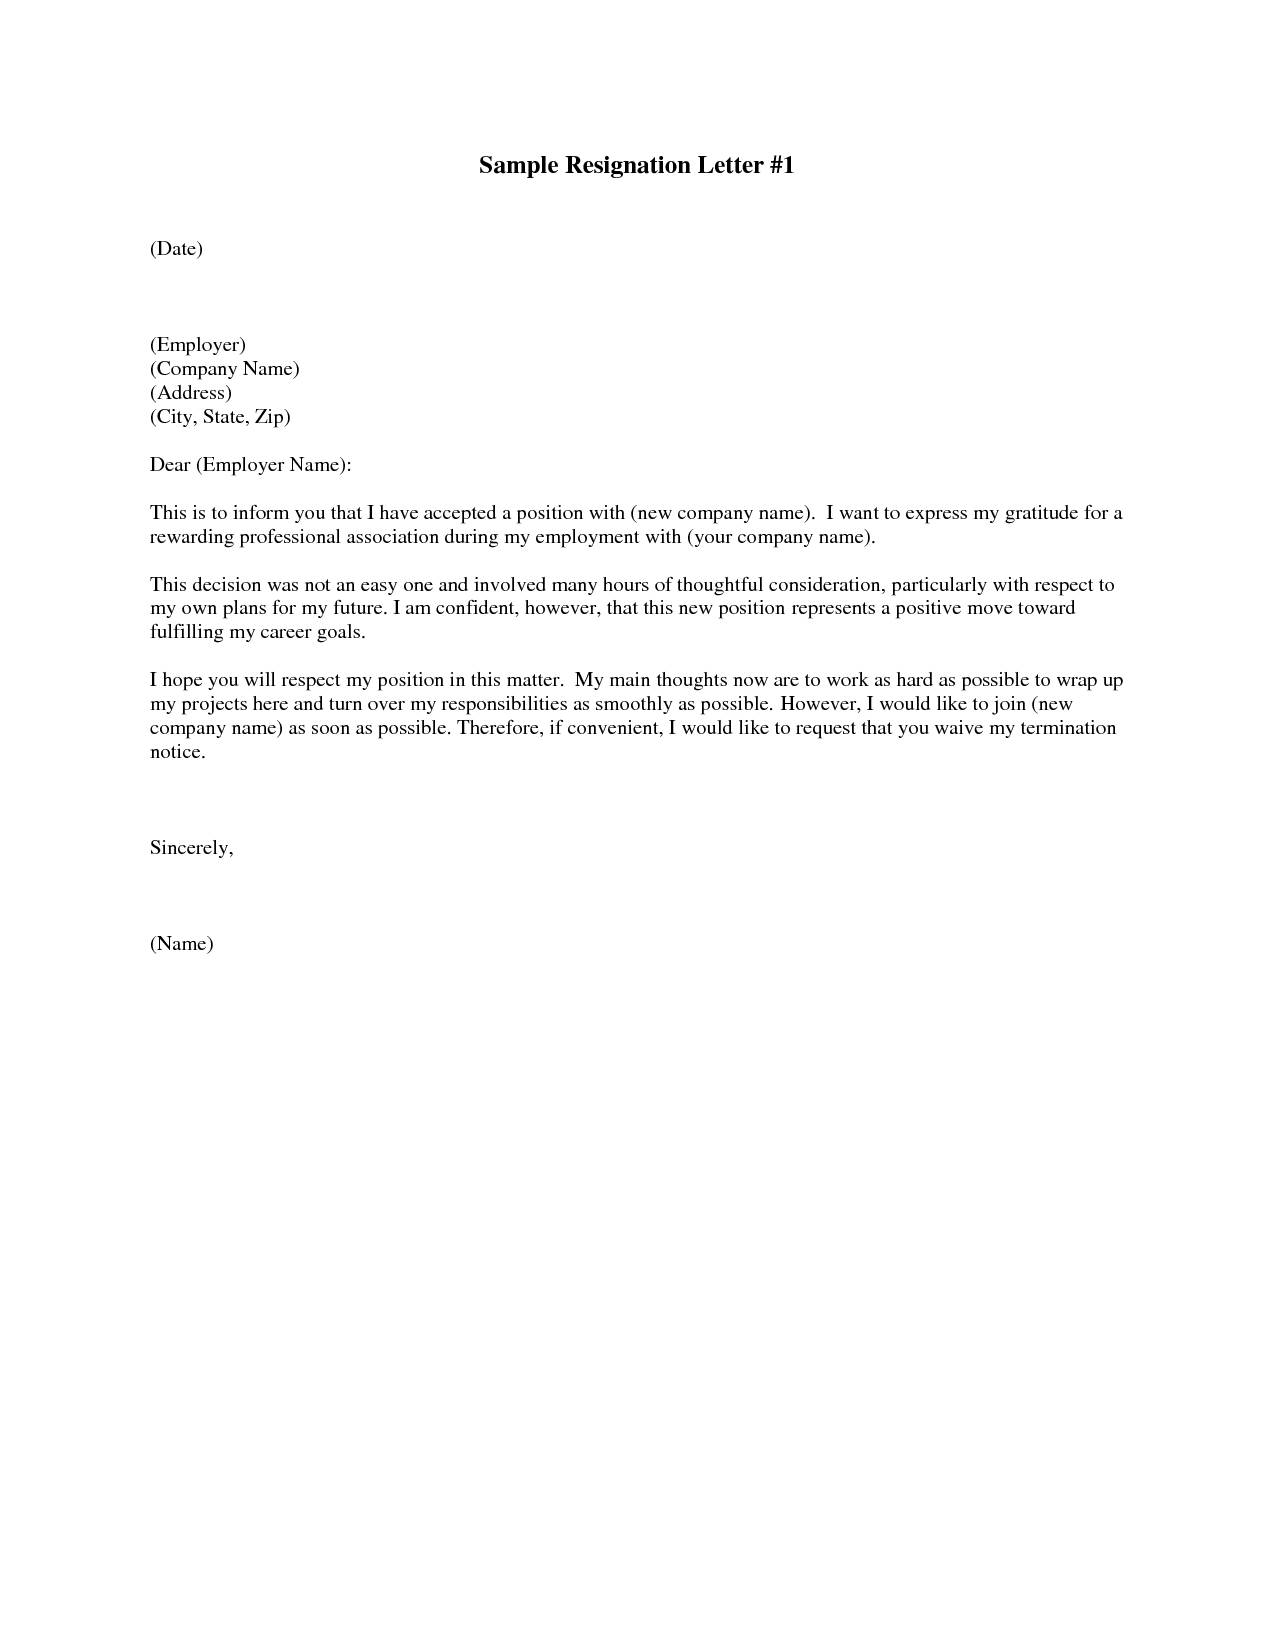 Top Resignation Letter Professional Resignation Letter Samples – Sample of Professional Resignation Letter